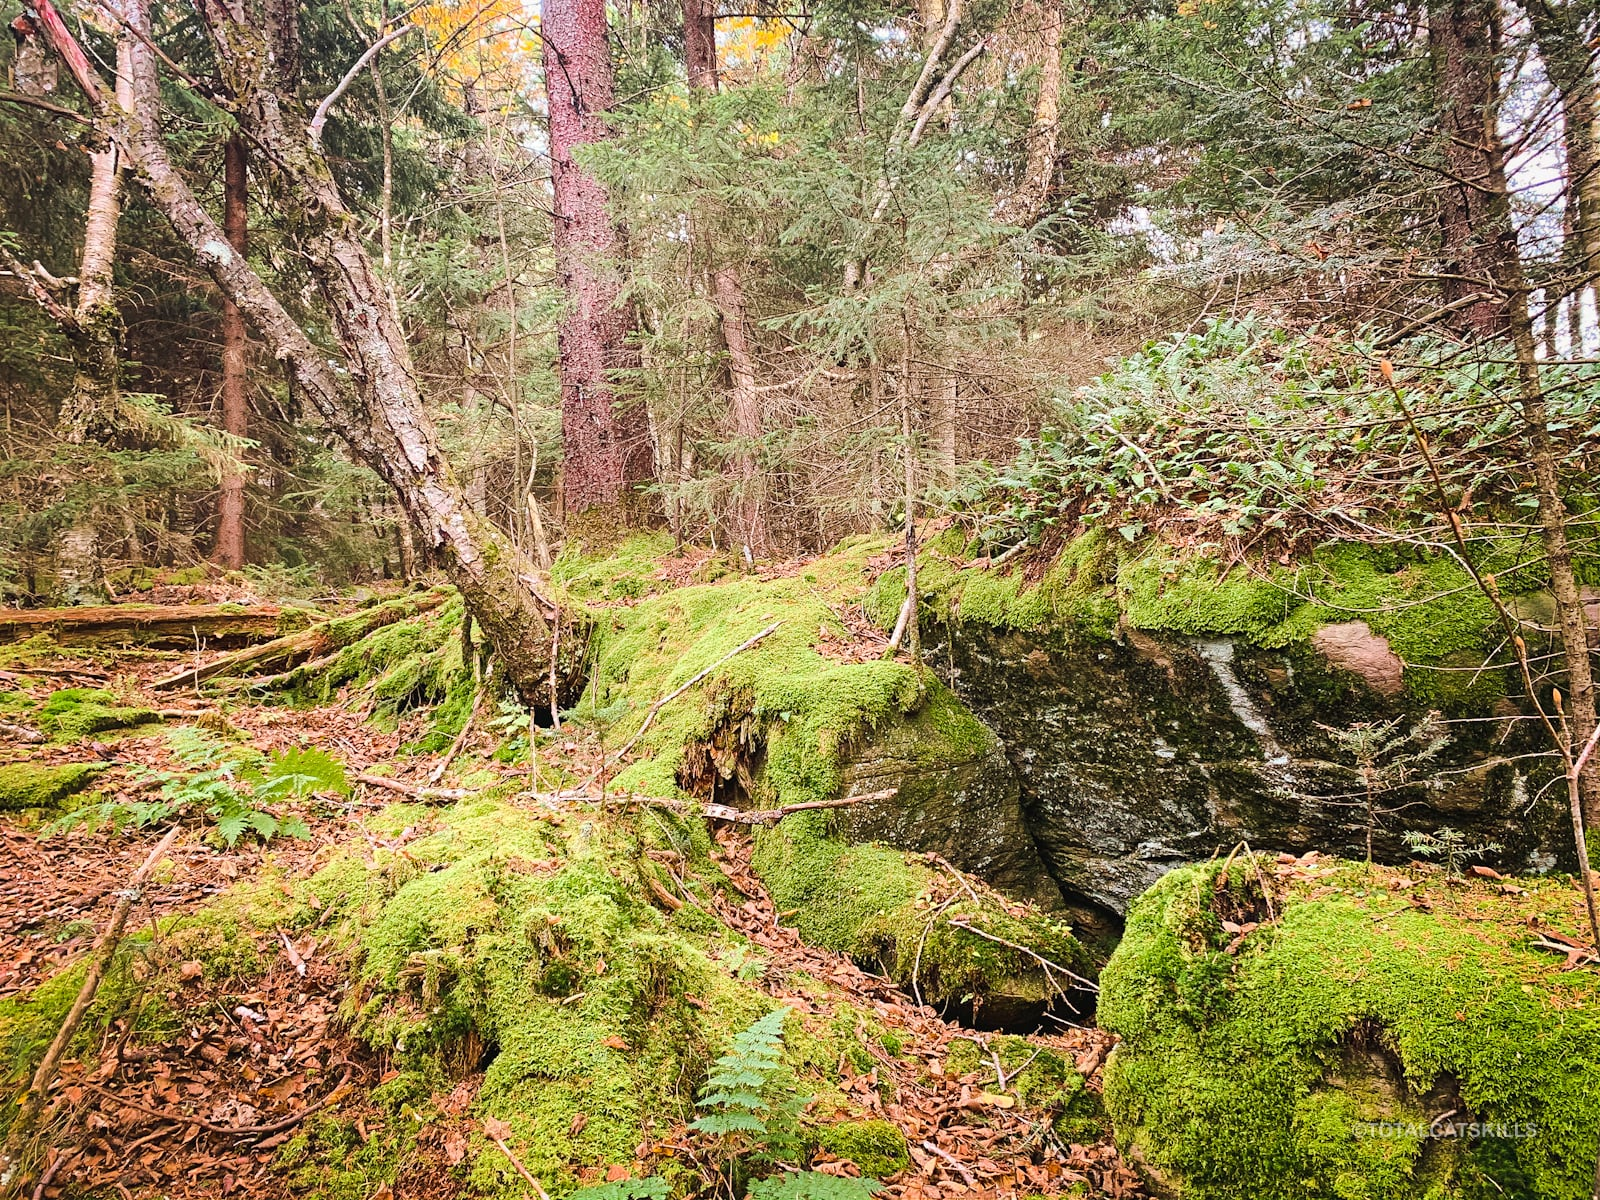 mossy woods and boulders